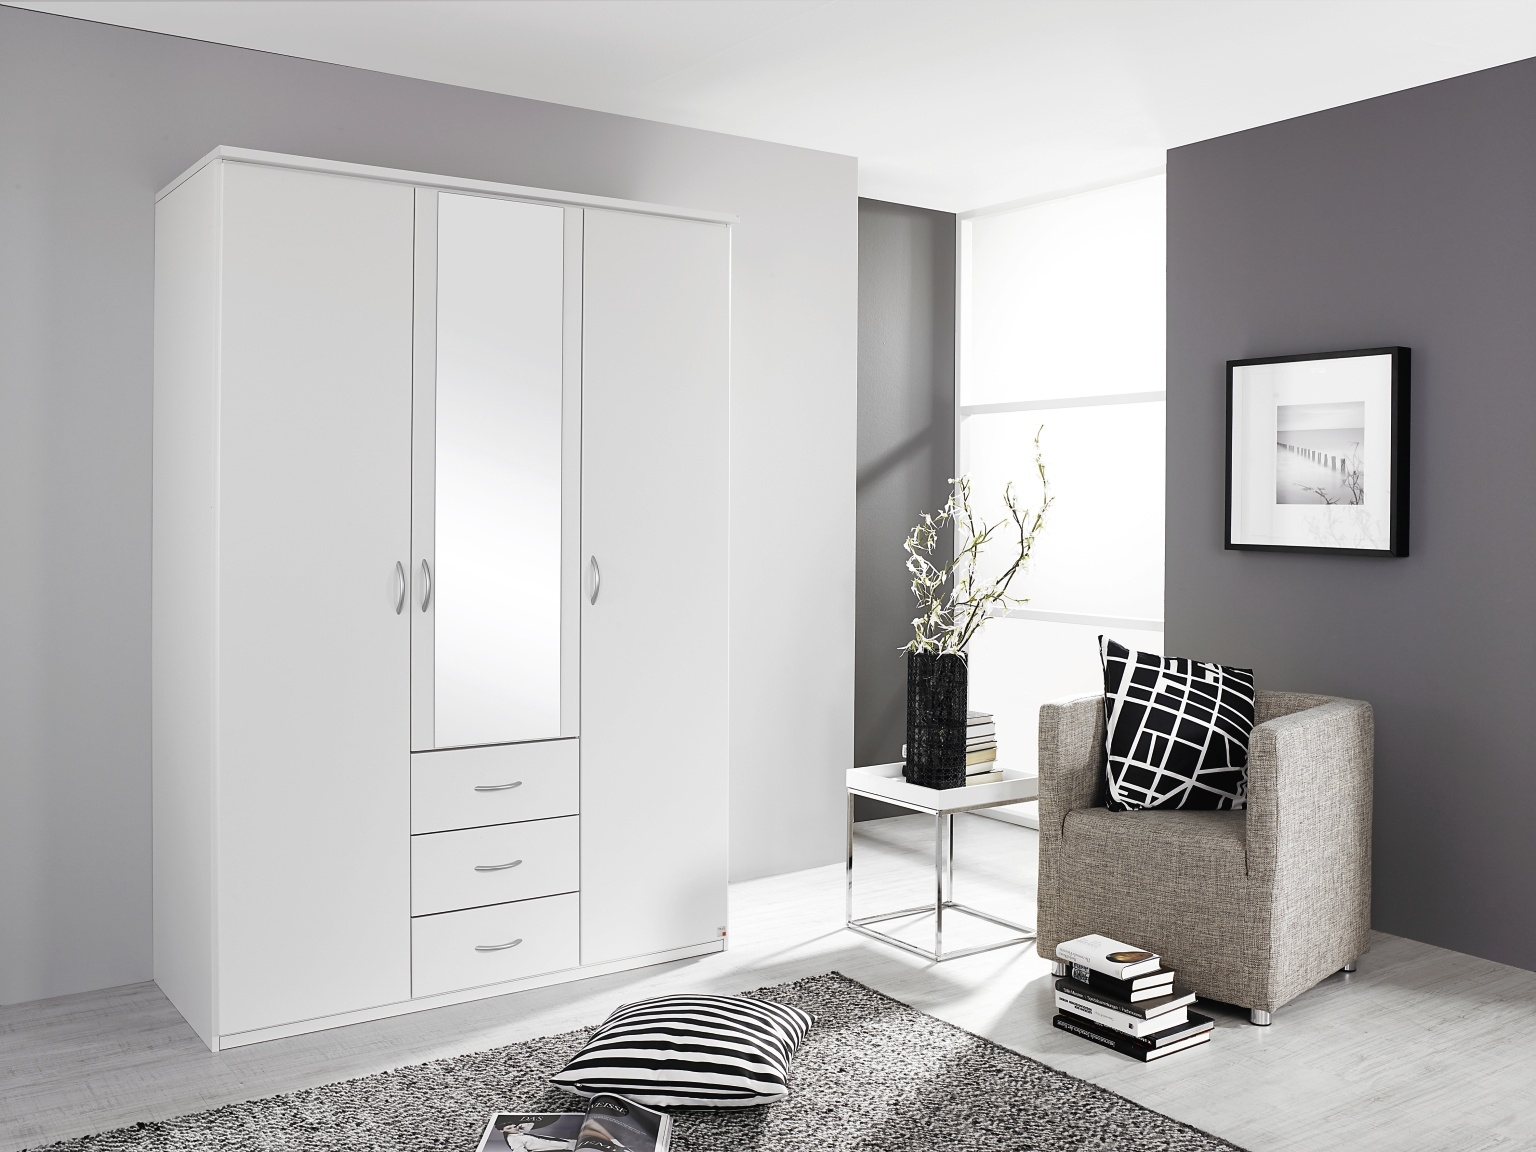 Rauch Blitz 2 Door 3 Drawer 1 Mirror Combi Wardrobe in Alpine White